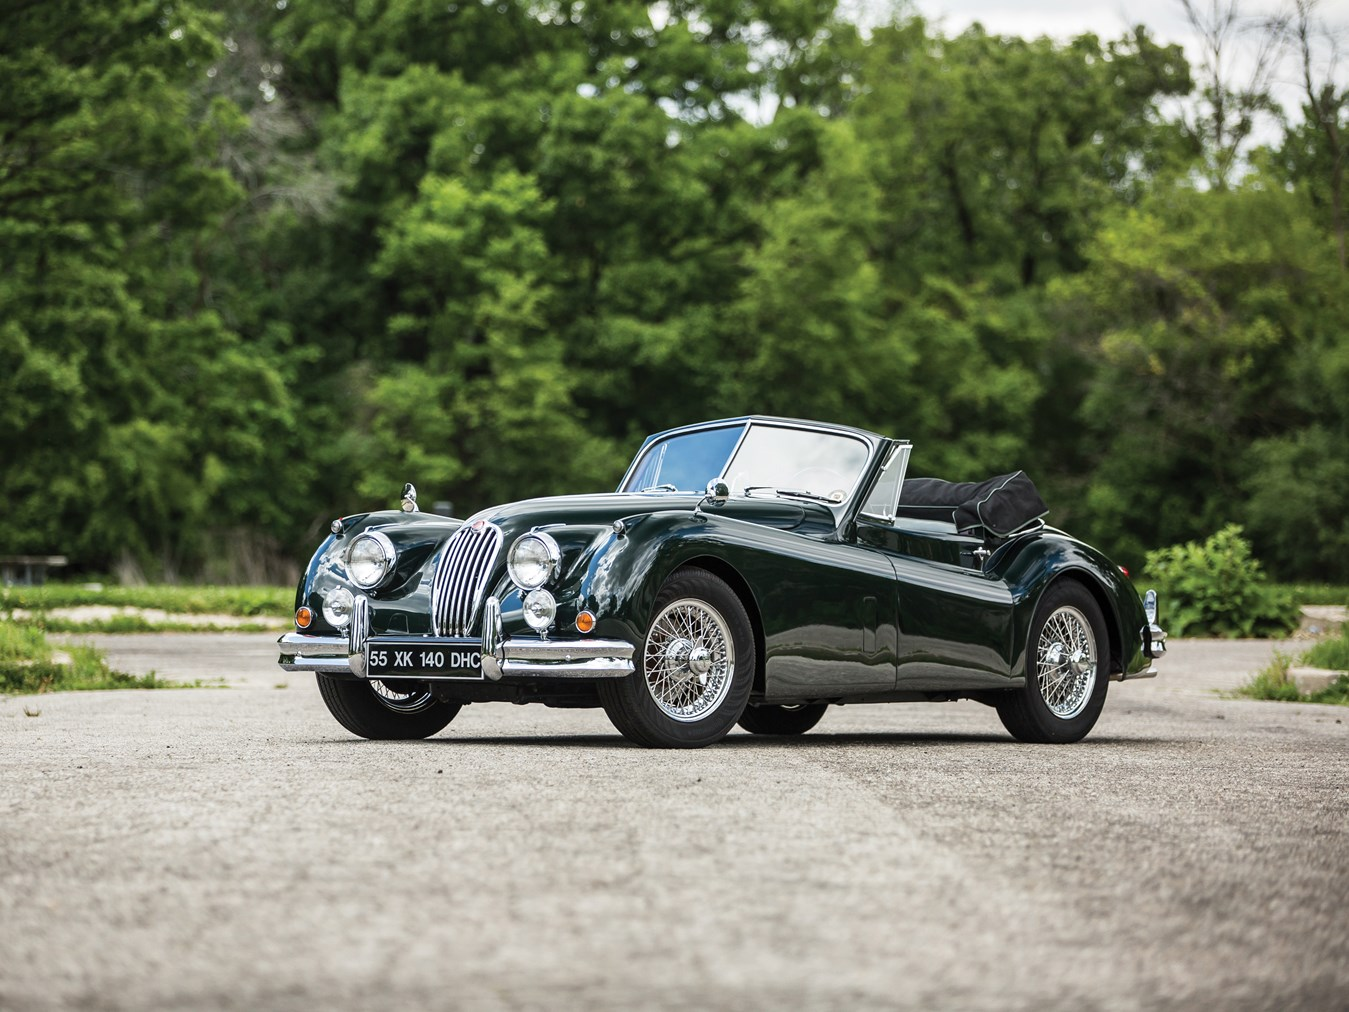 The Jaguar XK120 and the updated XK140 remain amongst the most beautiful cars of the forties and fifties.